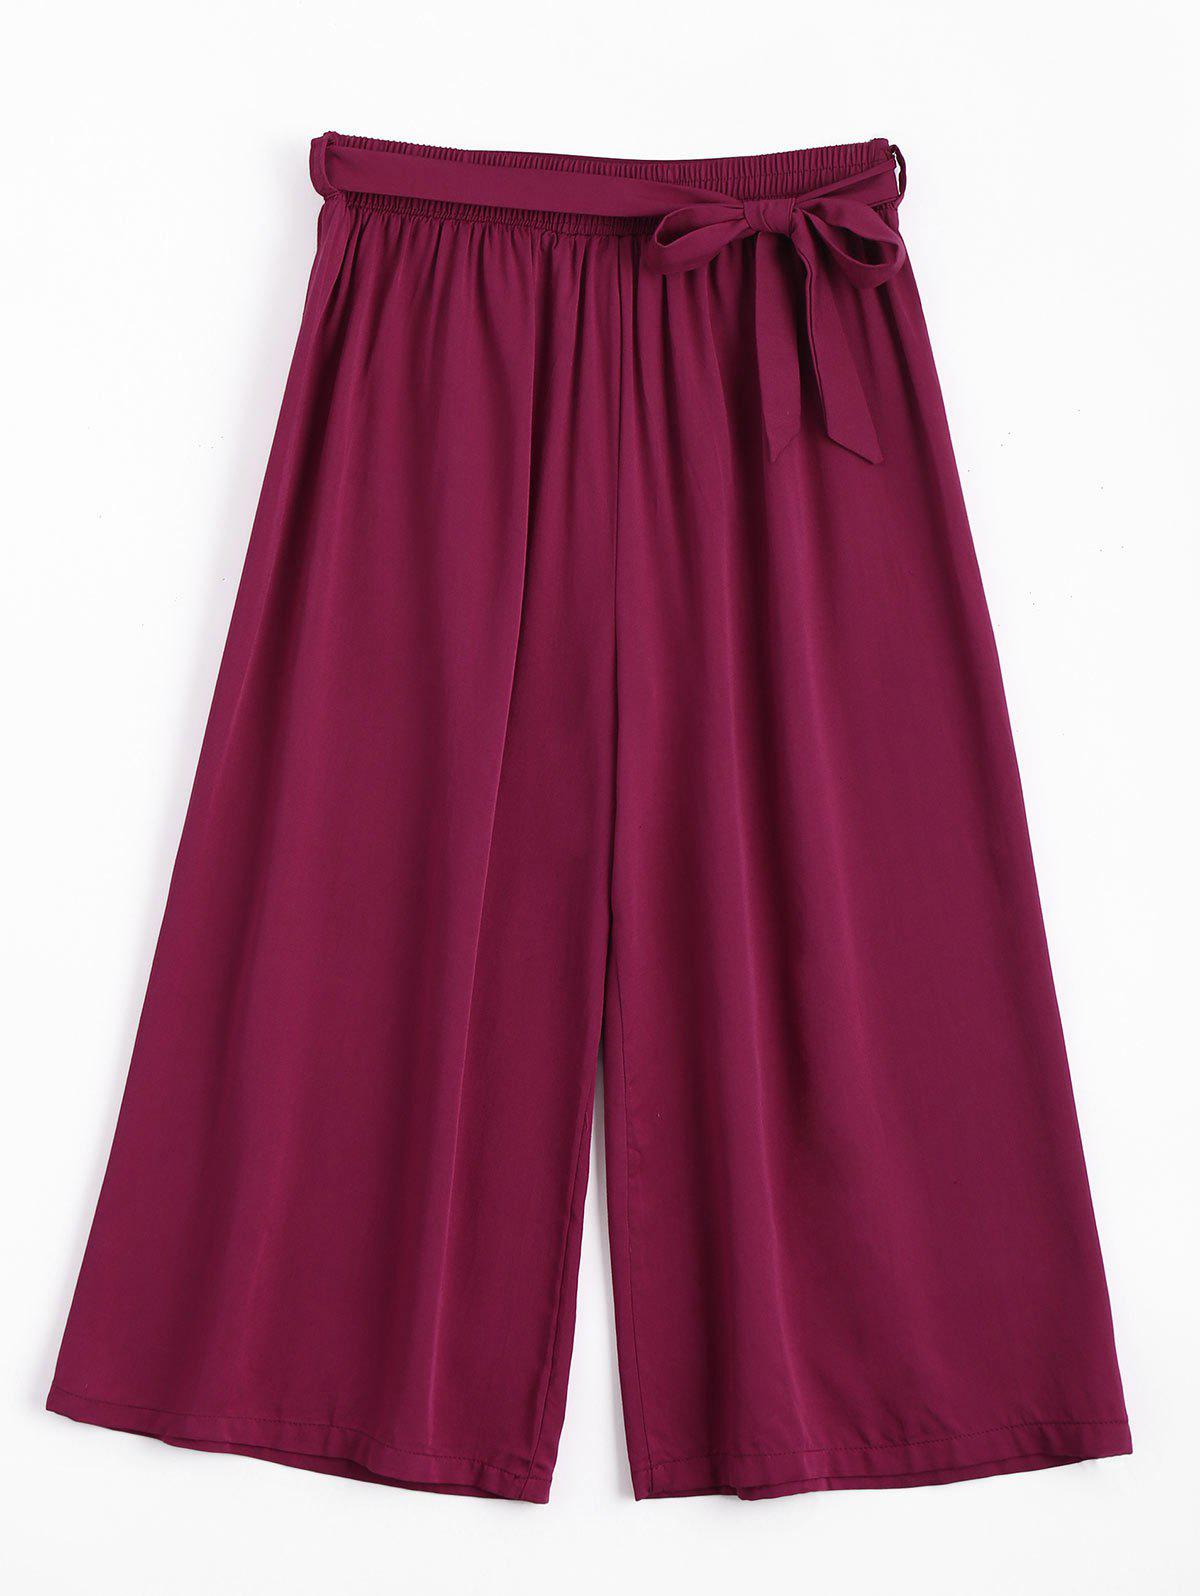 Capri High Waisted Belted Wide Leg Pants 222897201